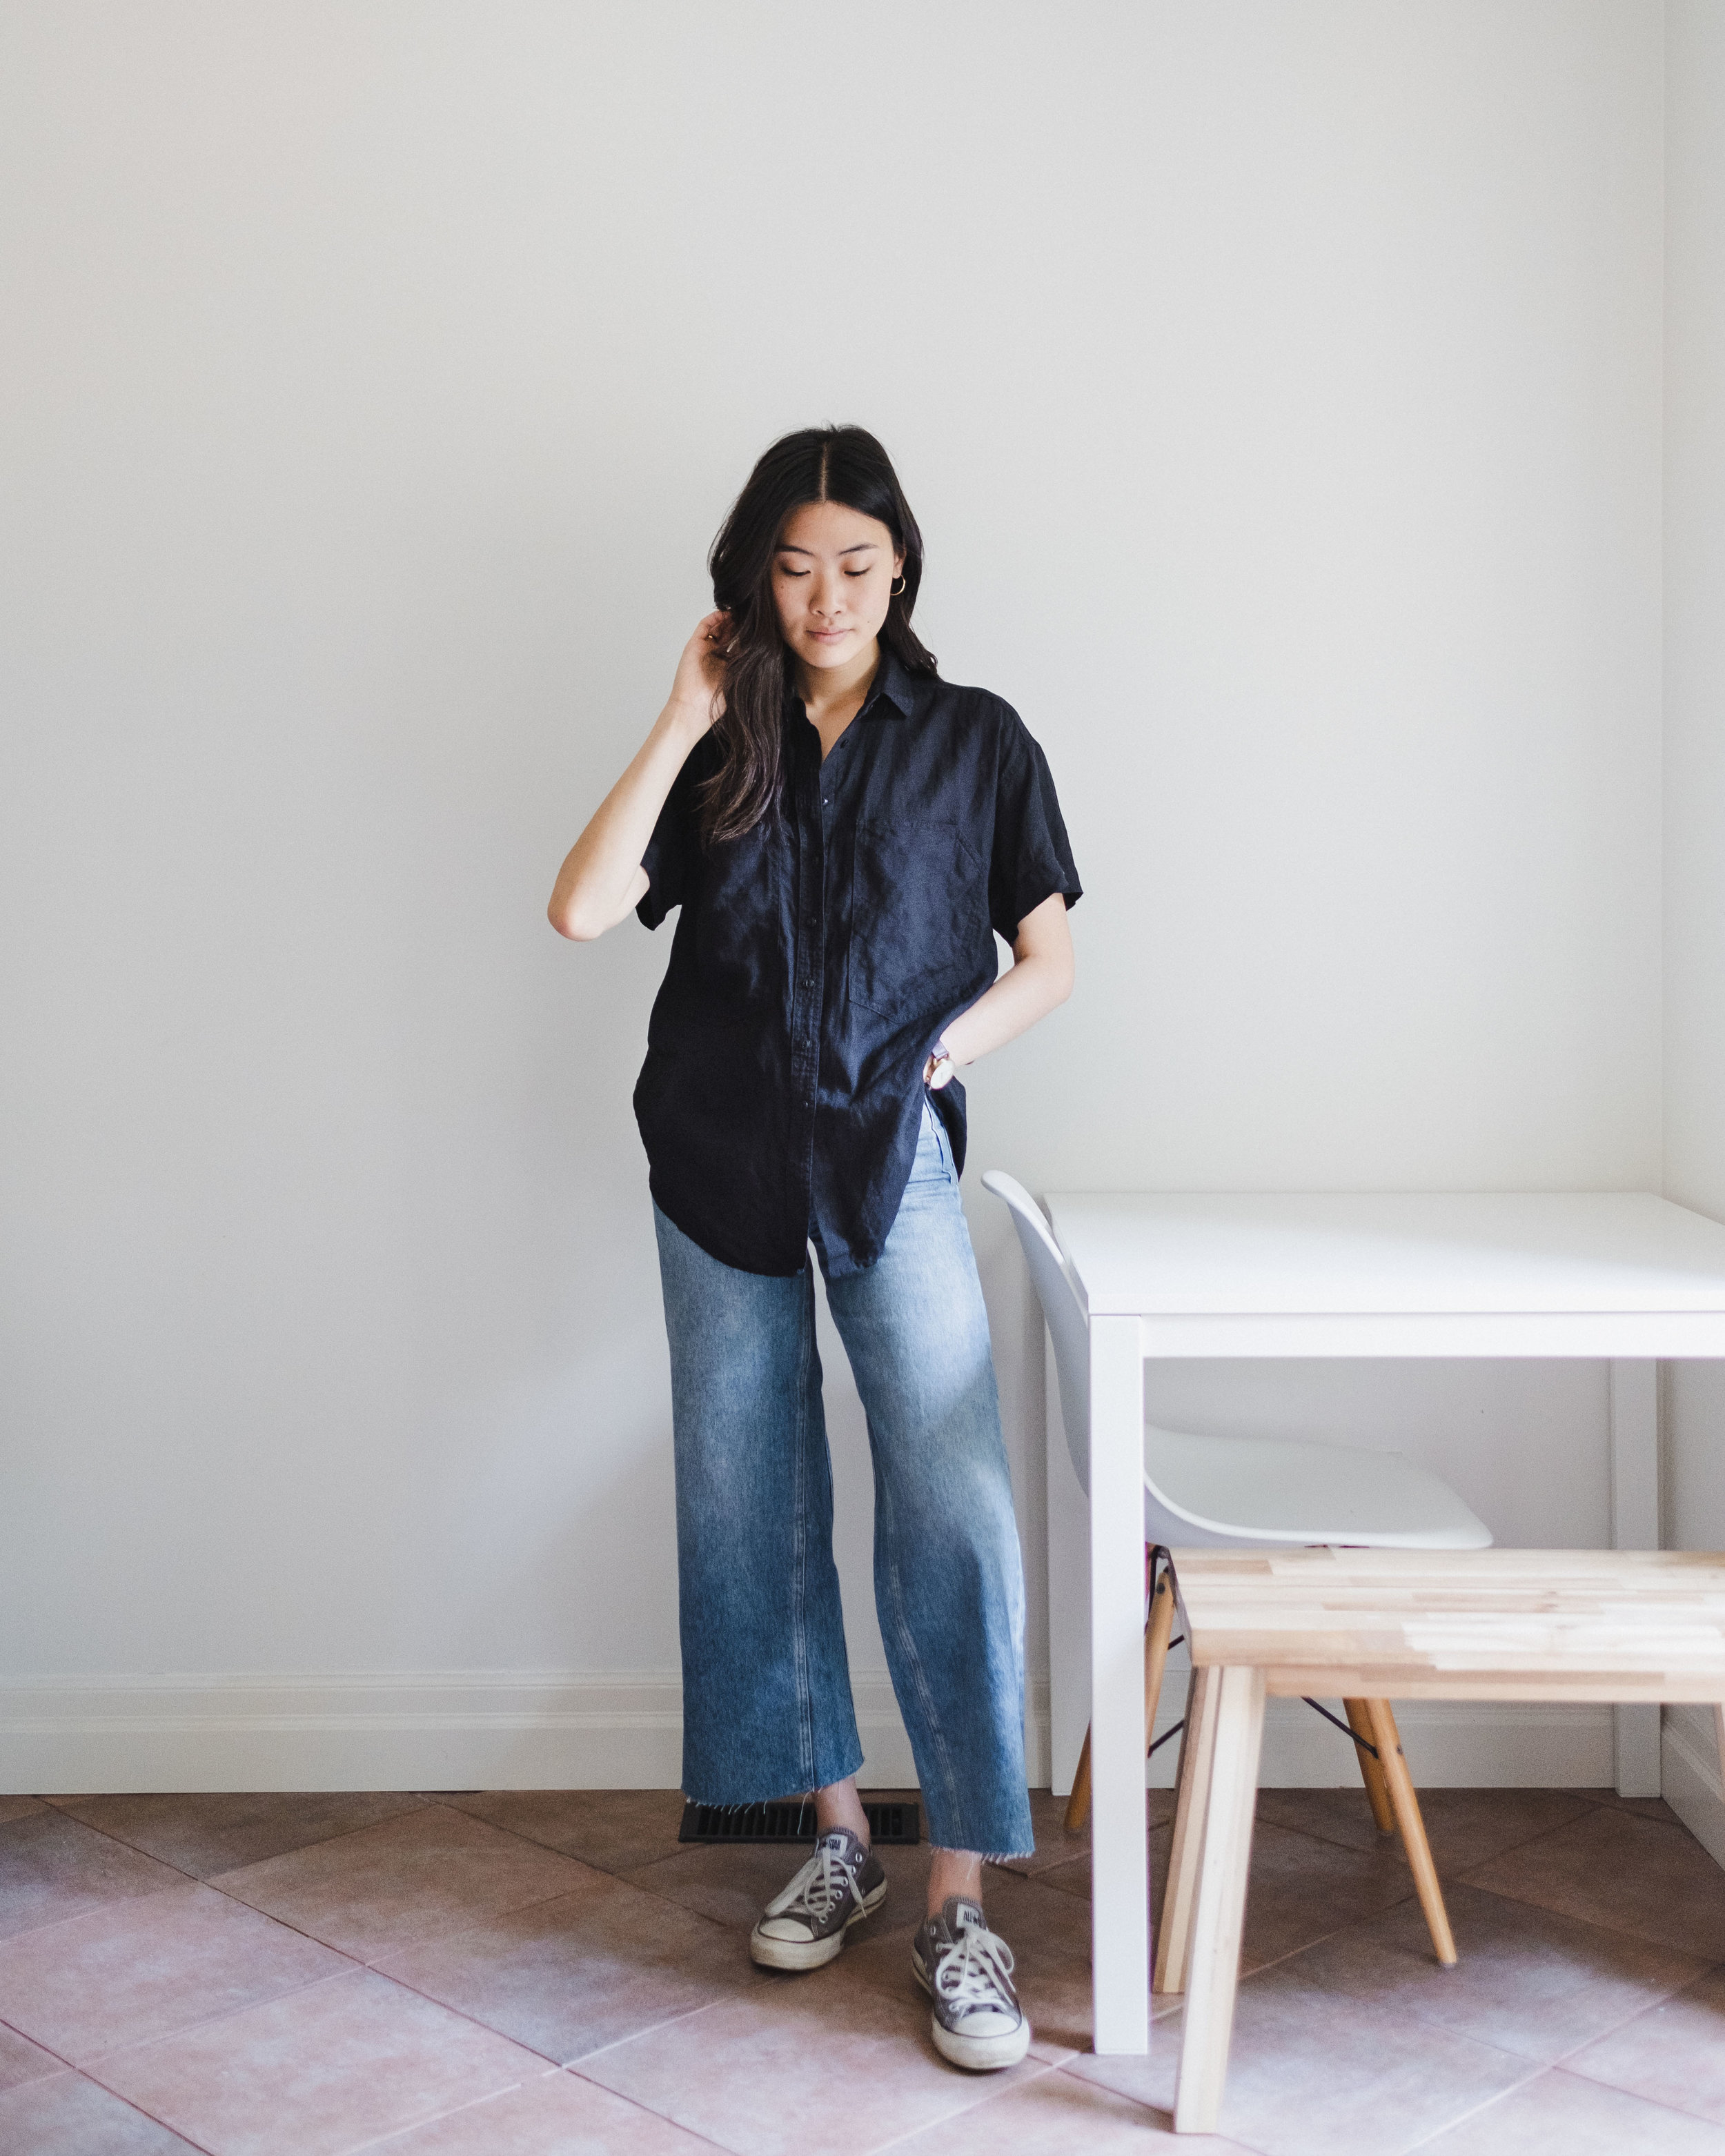 Linen Shirt  |  Wide-Leg Denim  | Sneakers